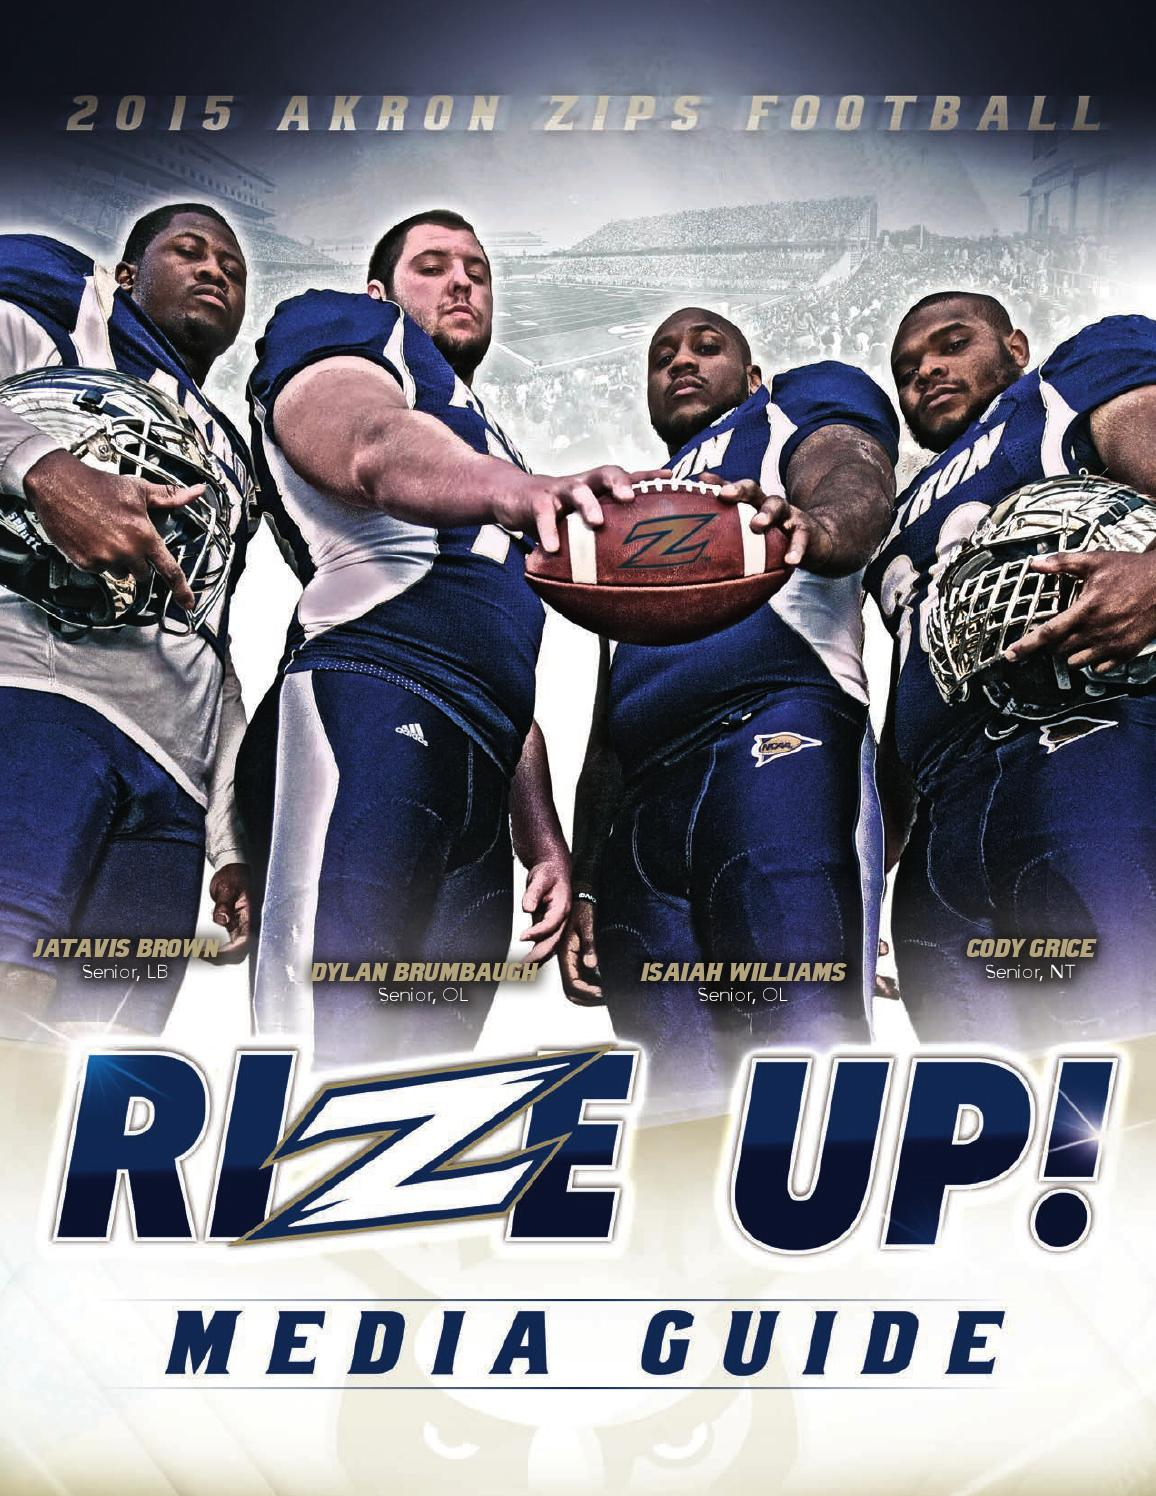 Nike jerseys for sale - 2015 Akron Zips Football Media Guide by Akron Zips - issuu